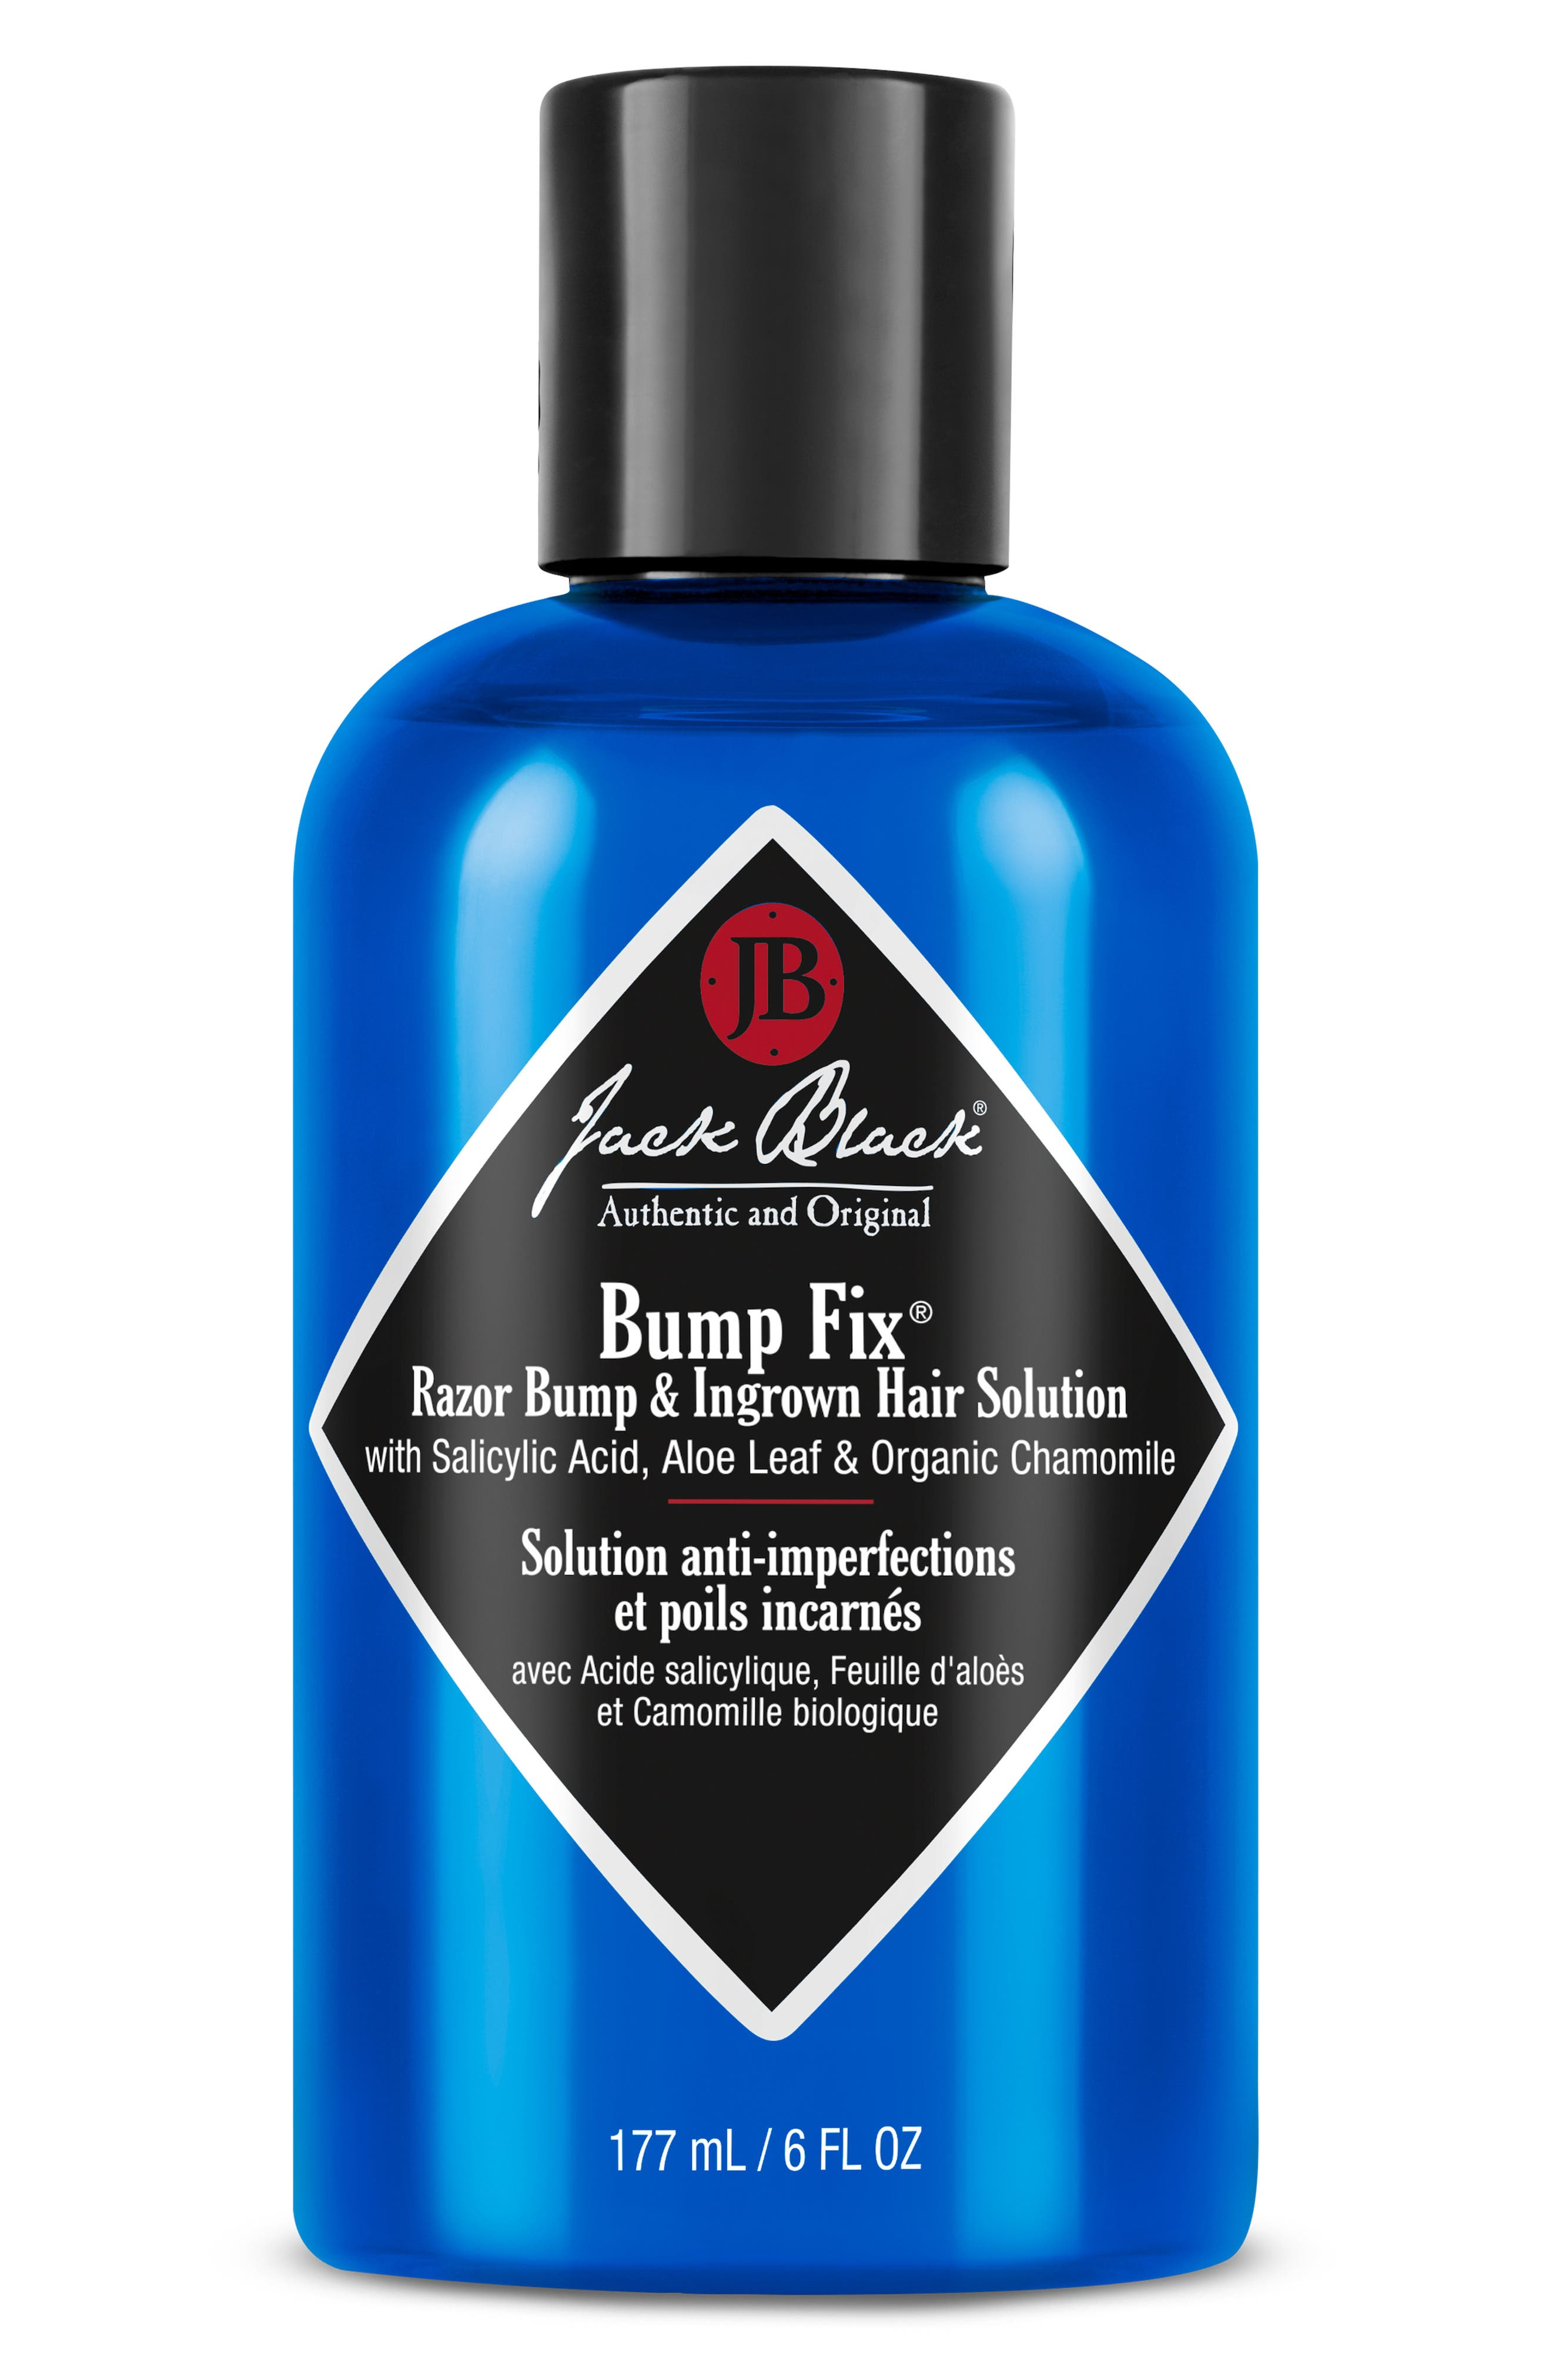 This go-to solution by Jack Black reduces razor bumps and ingrown hairs, and helps prevent new ones from forming. Its powerful combination of 2% salicylic acid and lactic acid exfoliate the top layer of dead skin cells, unearthing the skin-trapped facial hairs that can cause razor bumps and dissolving the pore-clogging facial oils that can cause acne or blackheads. It also contains effective hydrating and soothing ingredients to effectively